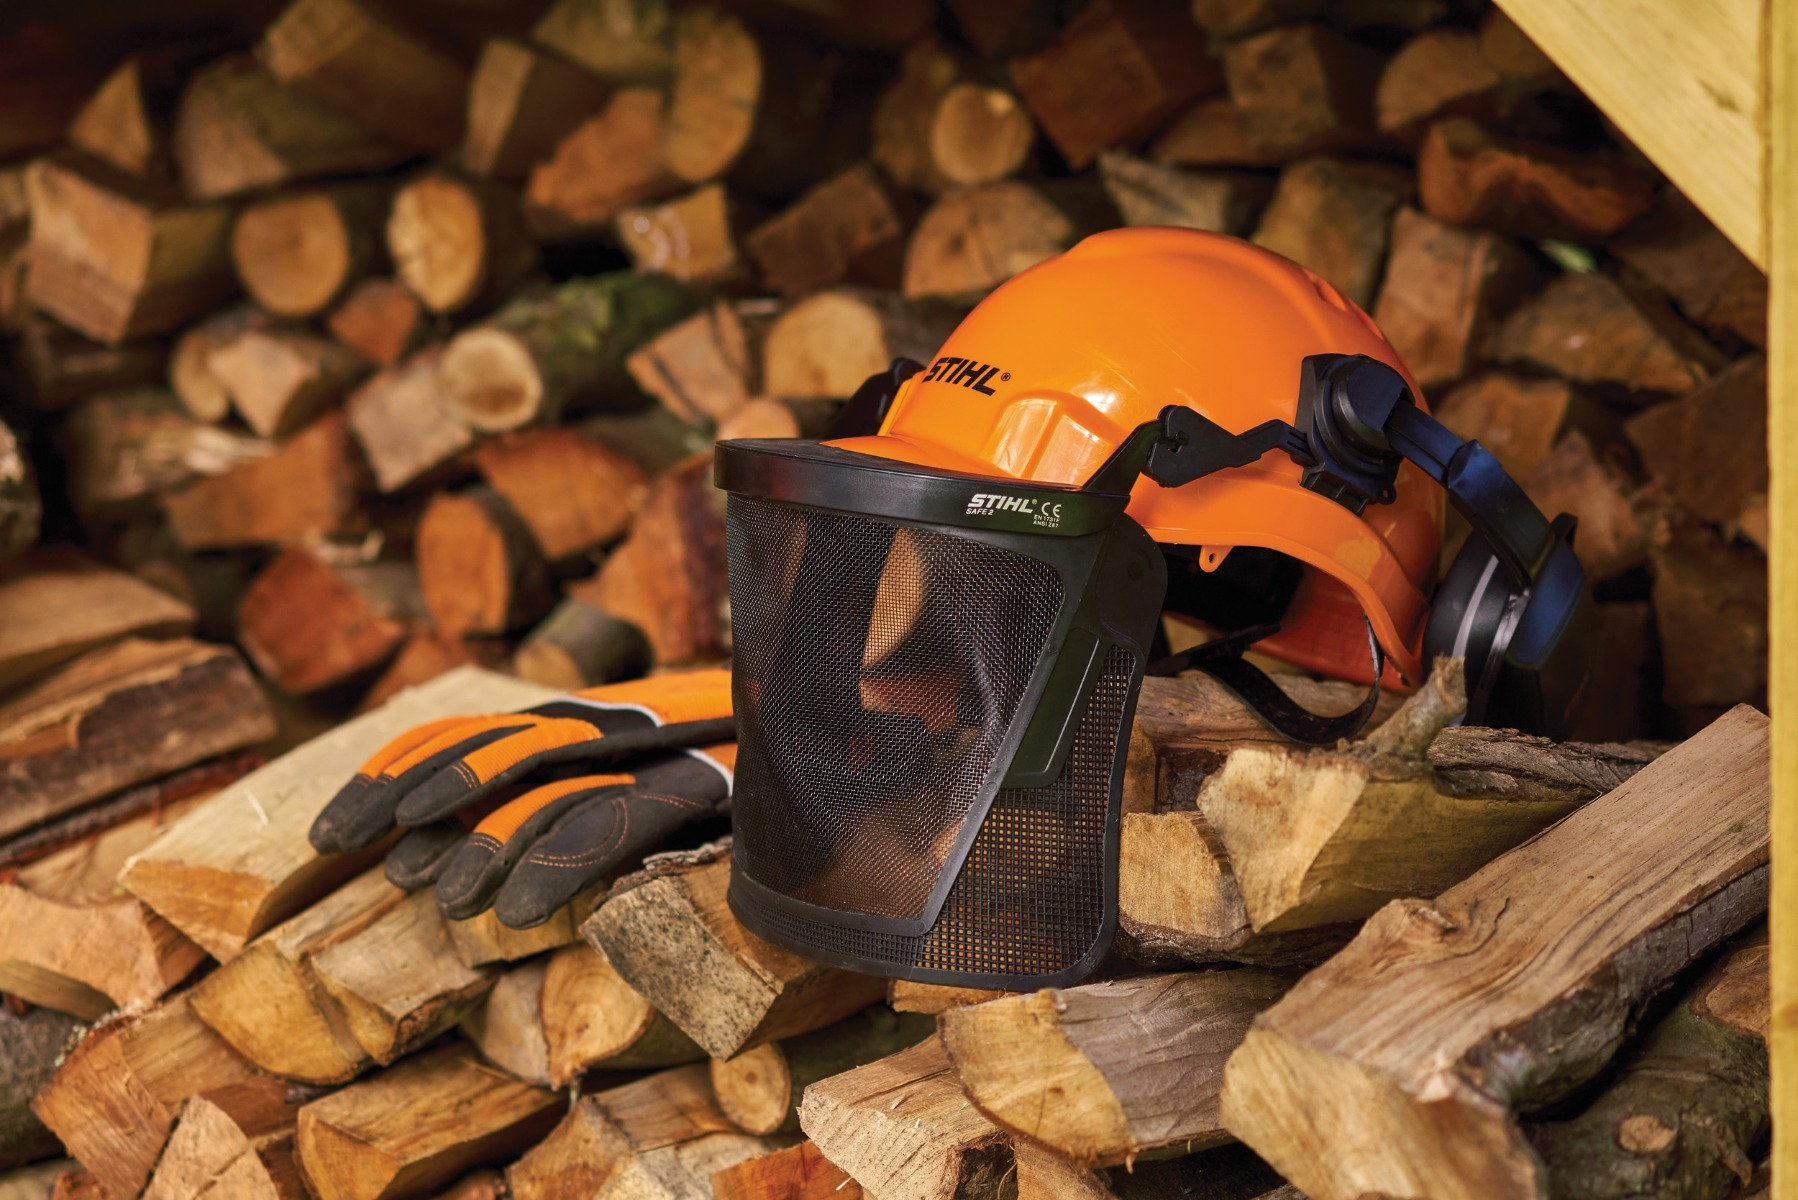 PPE you need for your Chainsaw operation, including helmet and gloves